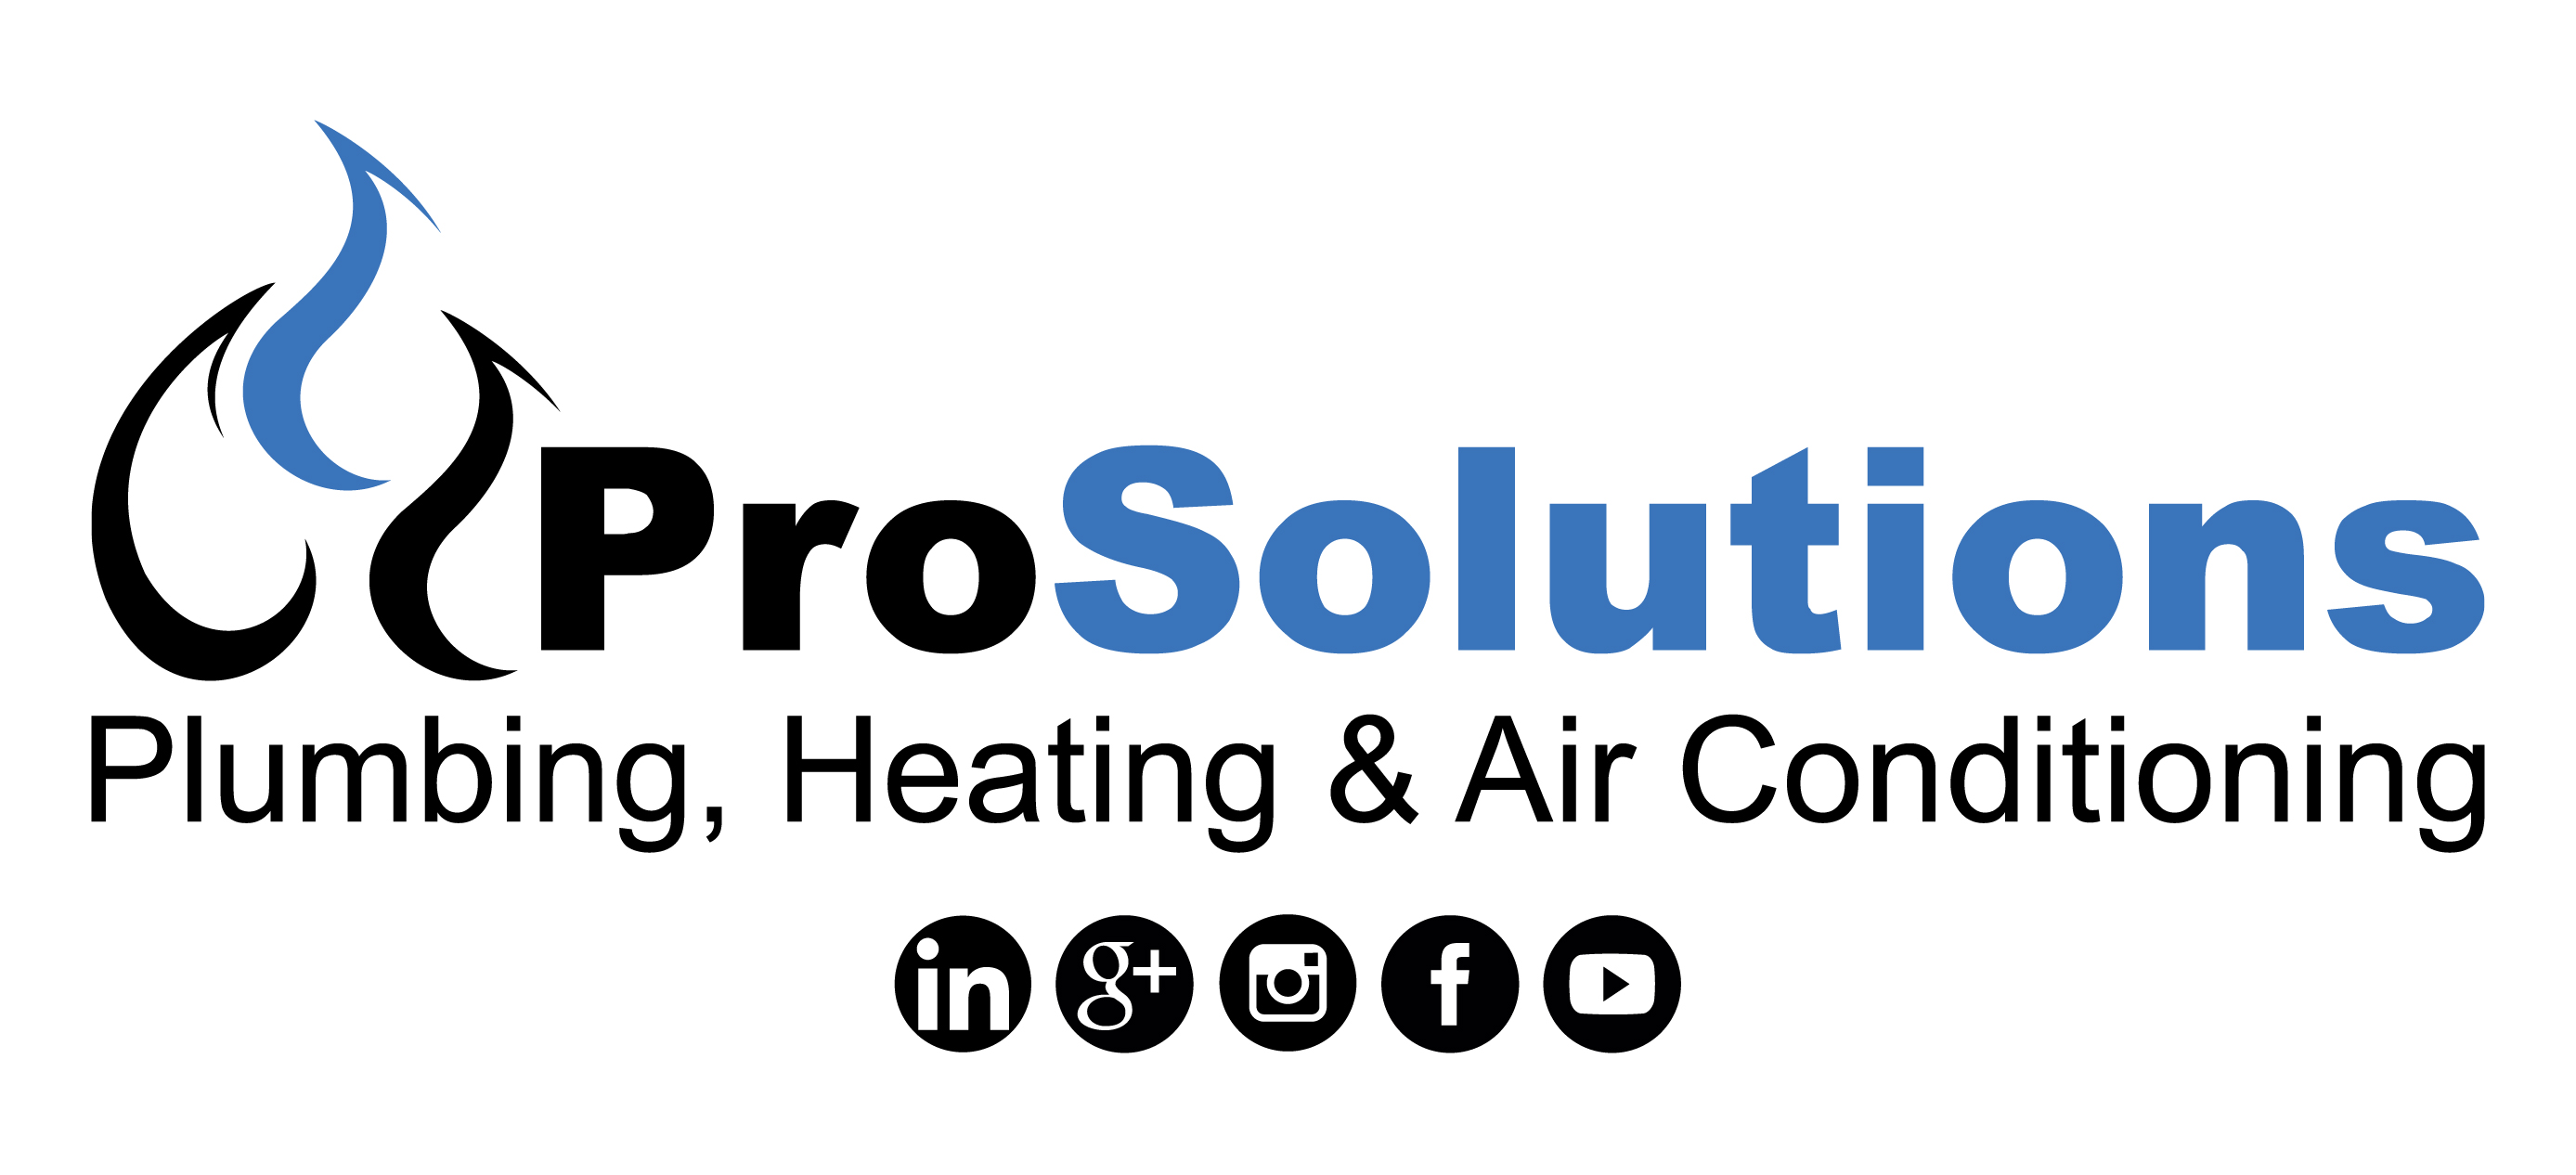 ProSolutions Plumbing Heating & Air Conditioning Inc.